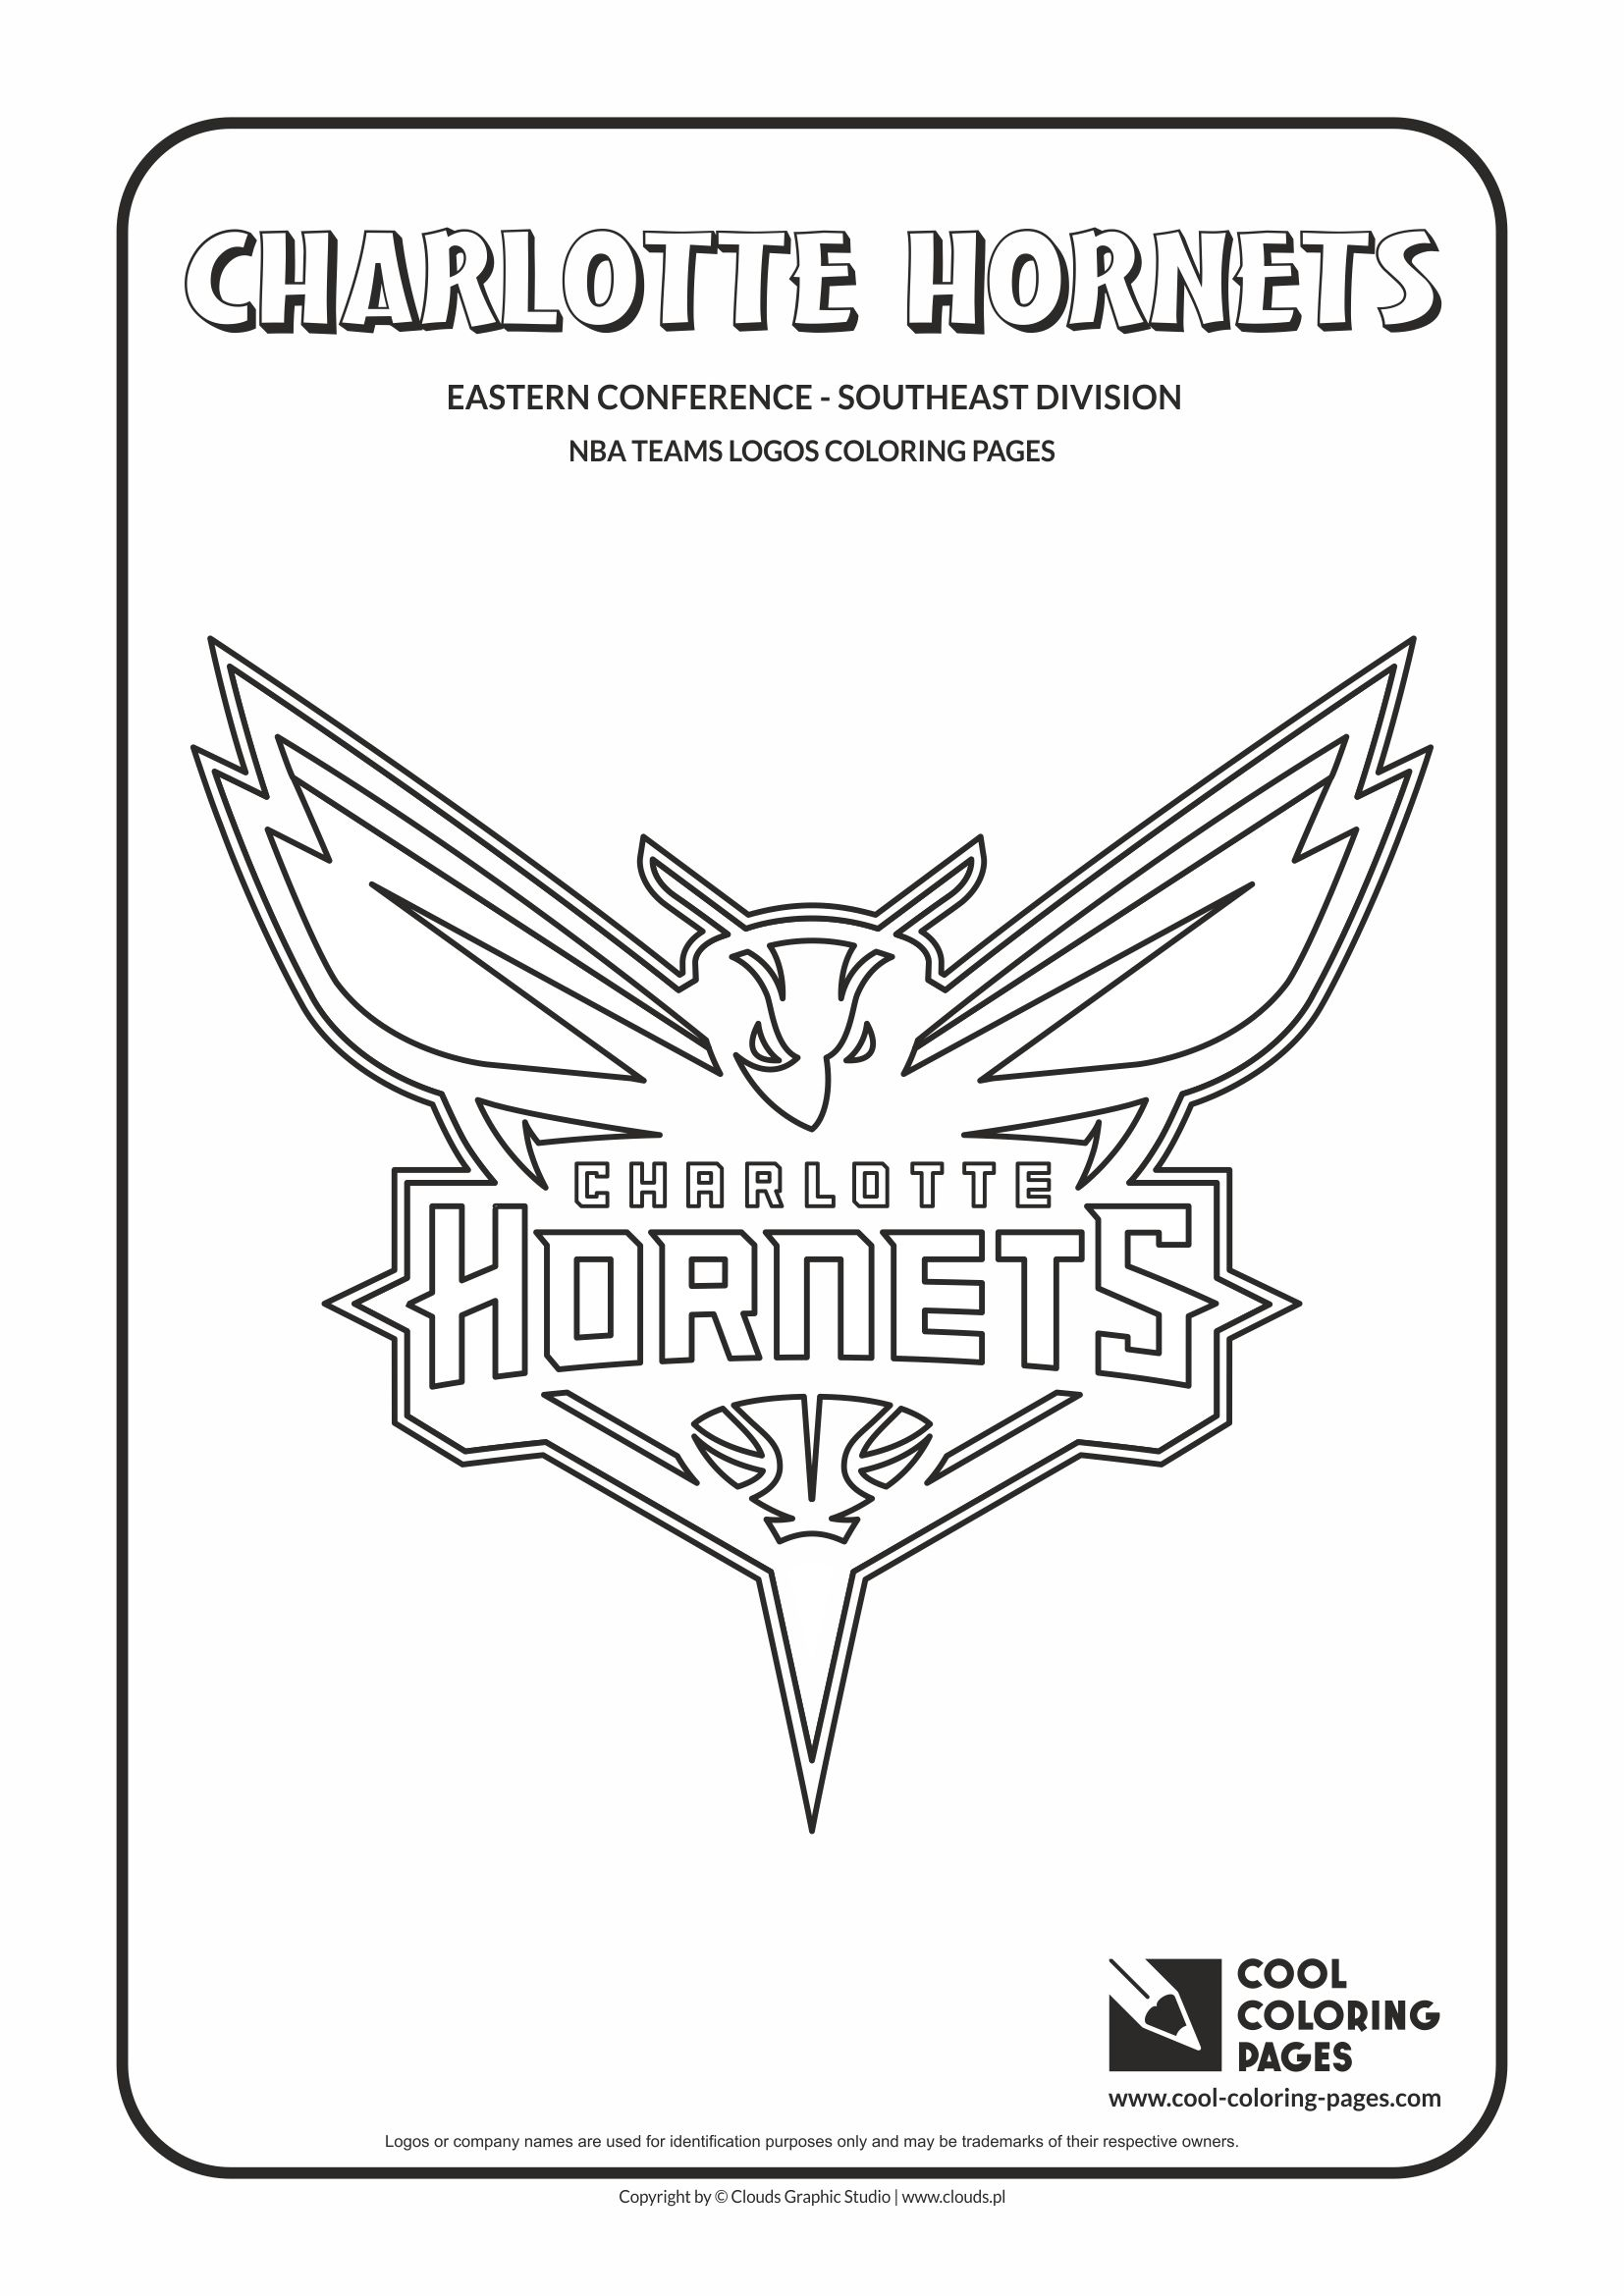 cool coloring pages nba basketball clubs logos easter conference southeast division charlotte